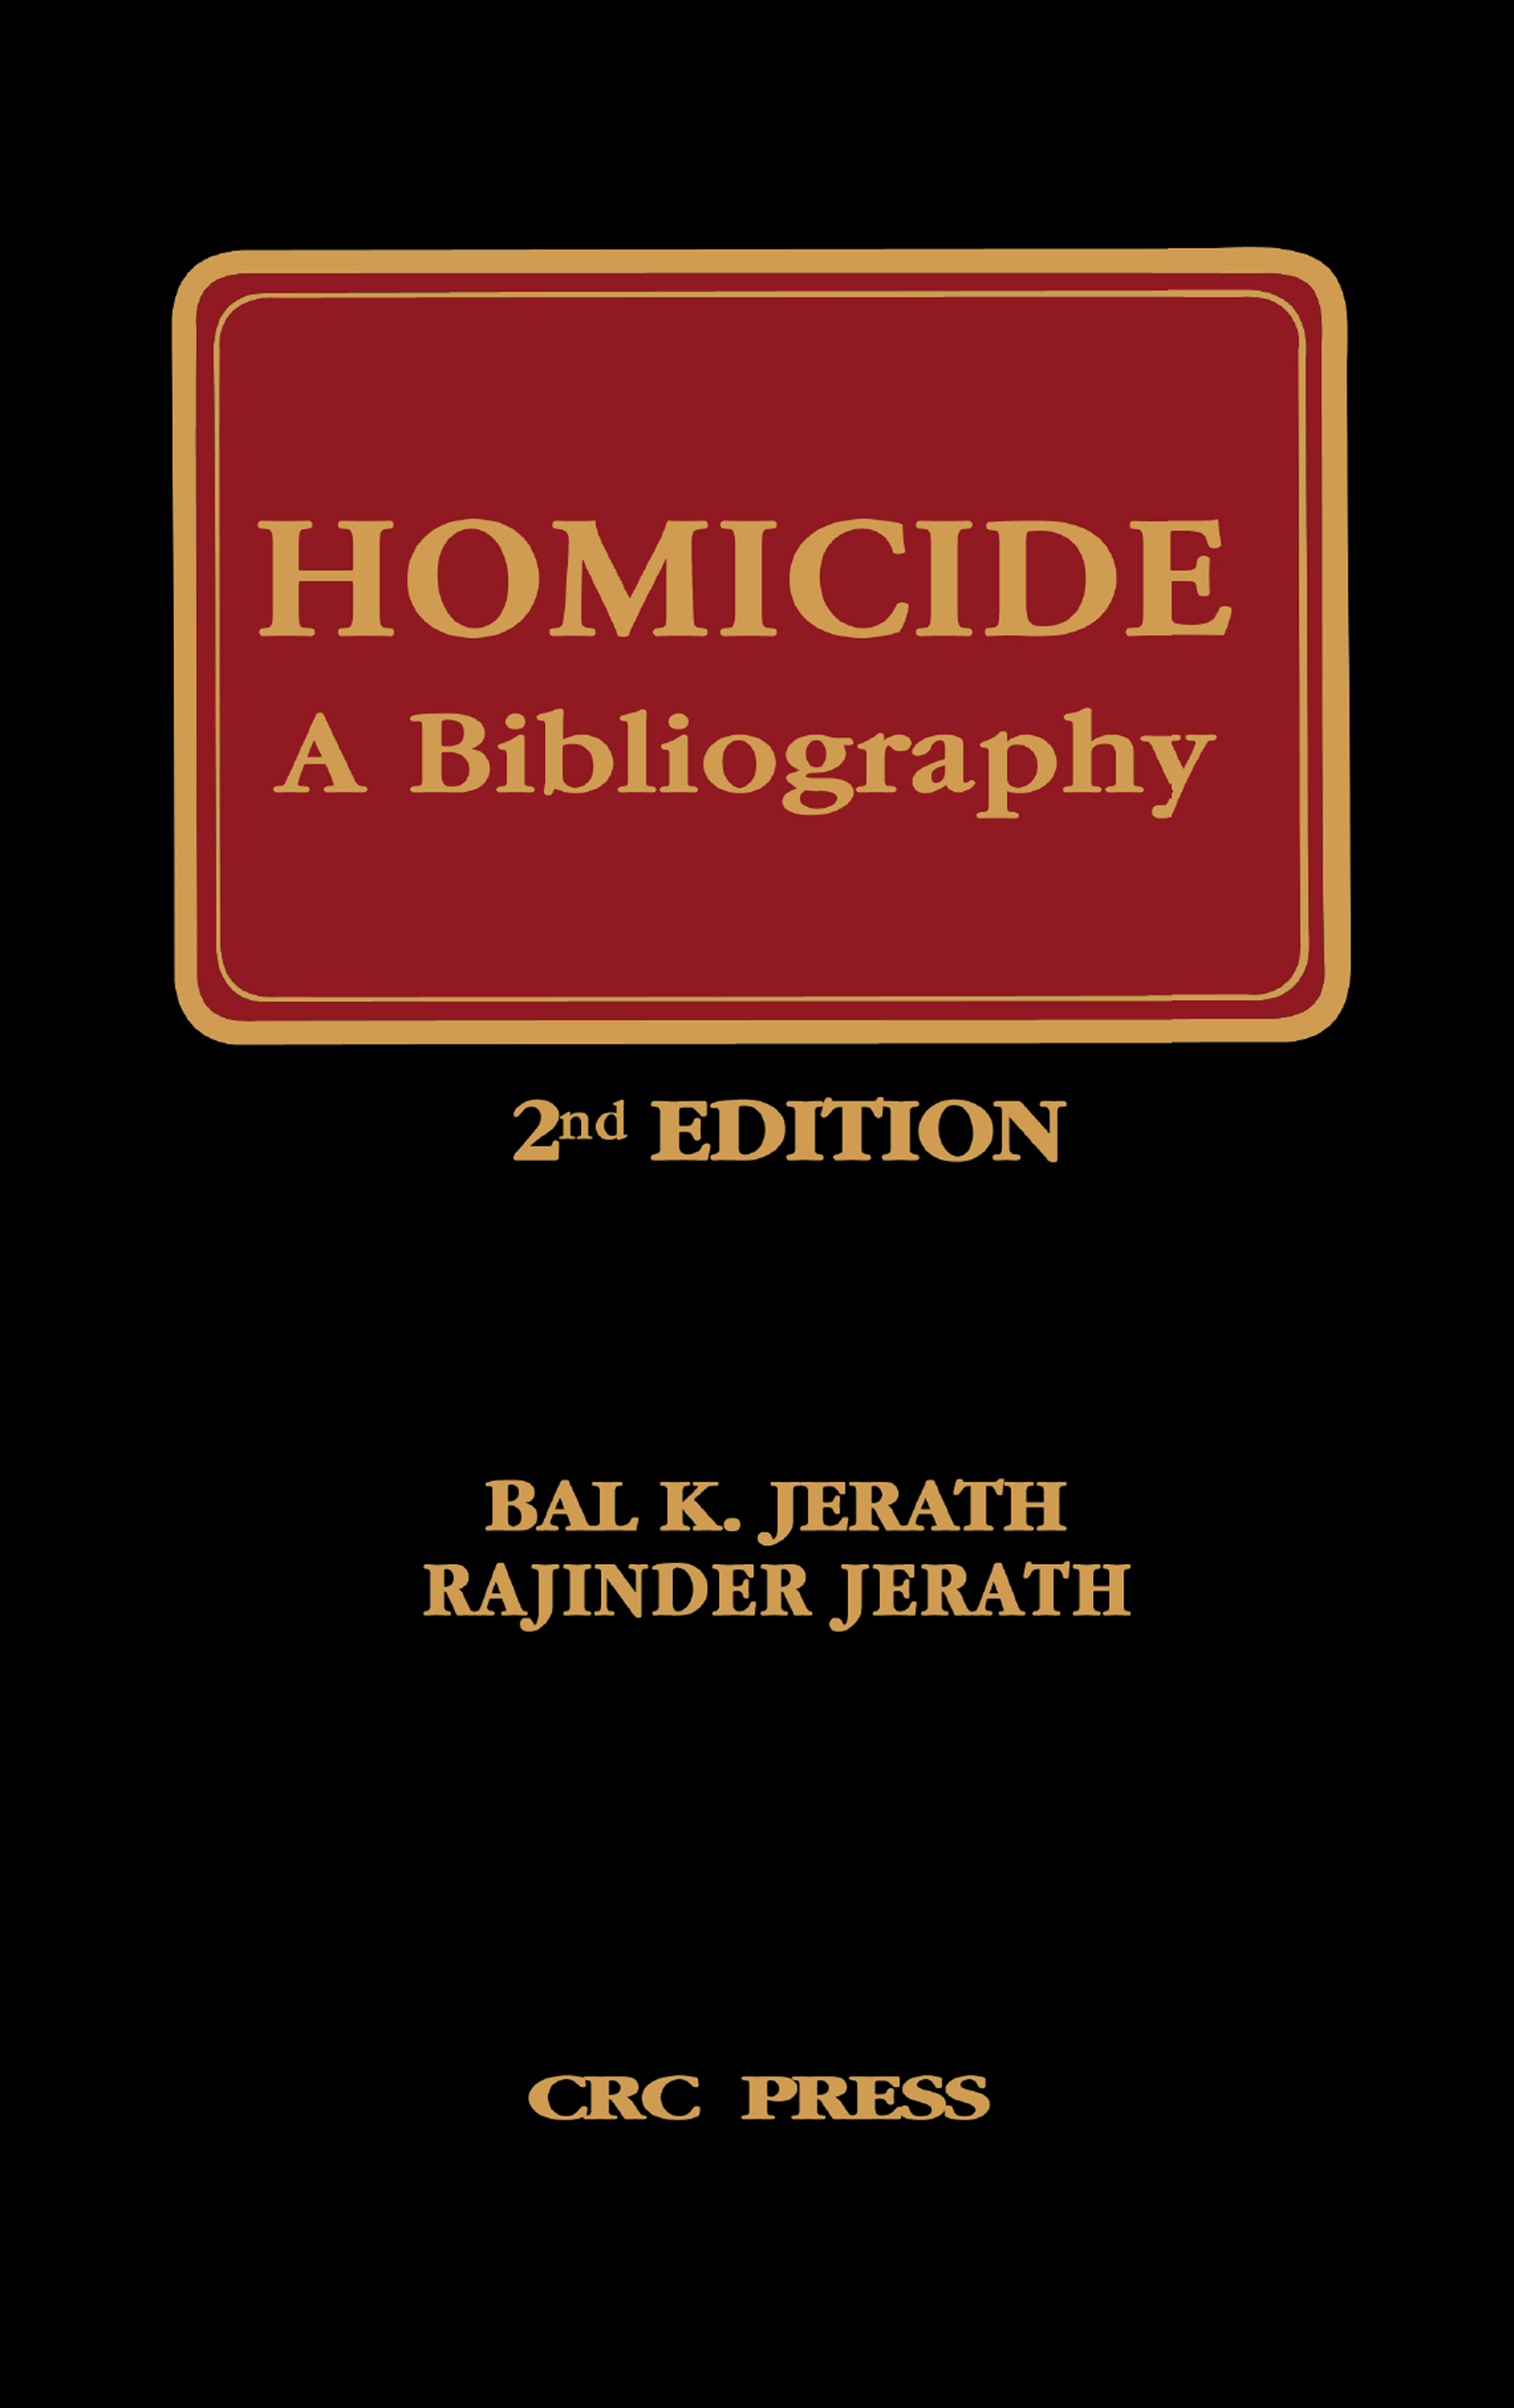 Homicide, Suicide, and Accidents